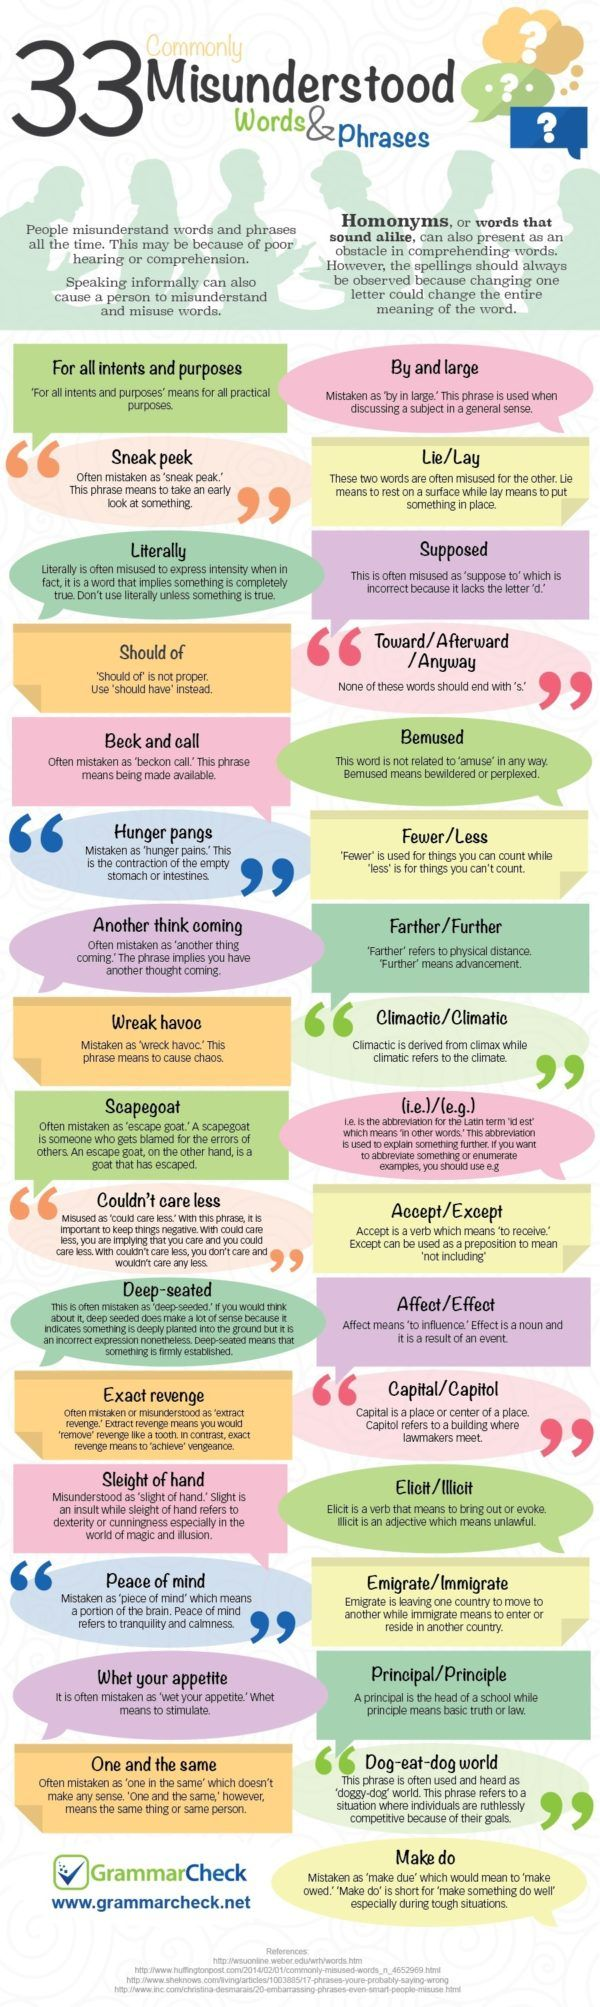 #infographic from Grammar Check lists commonly misunderstood words & phrases